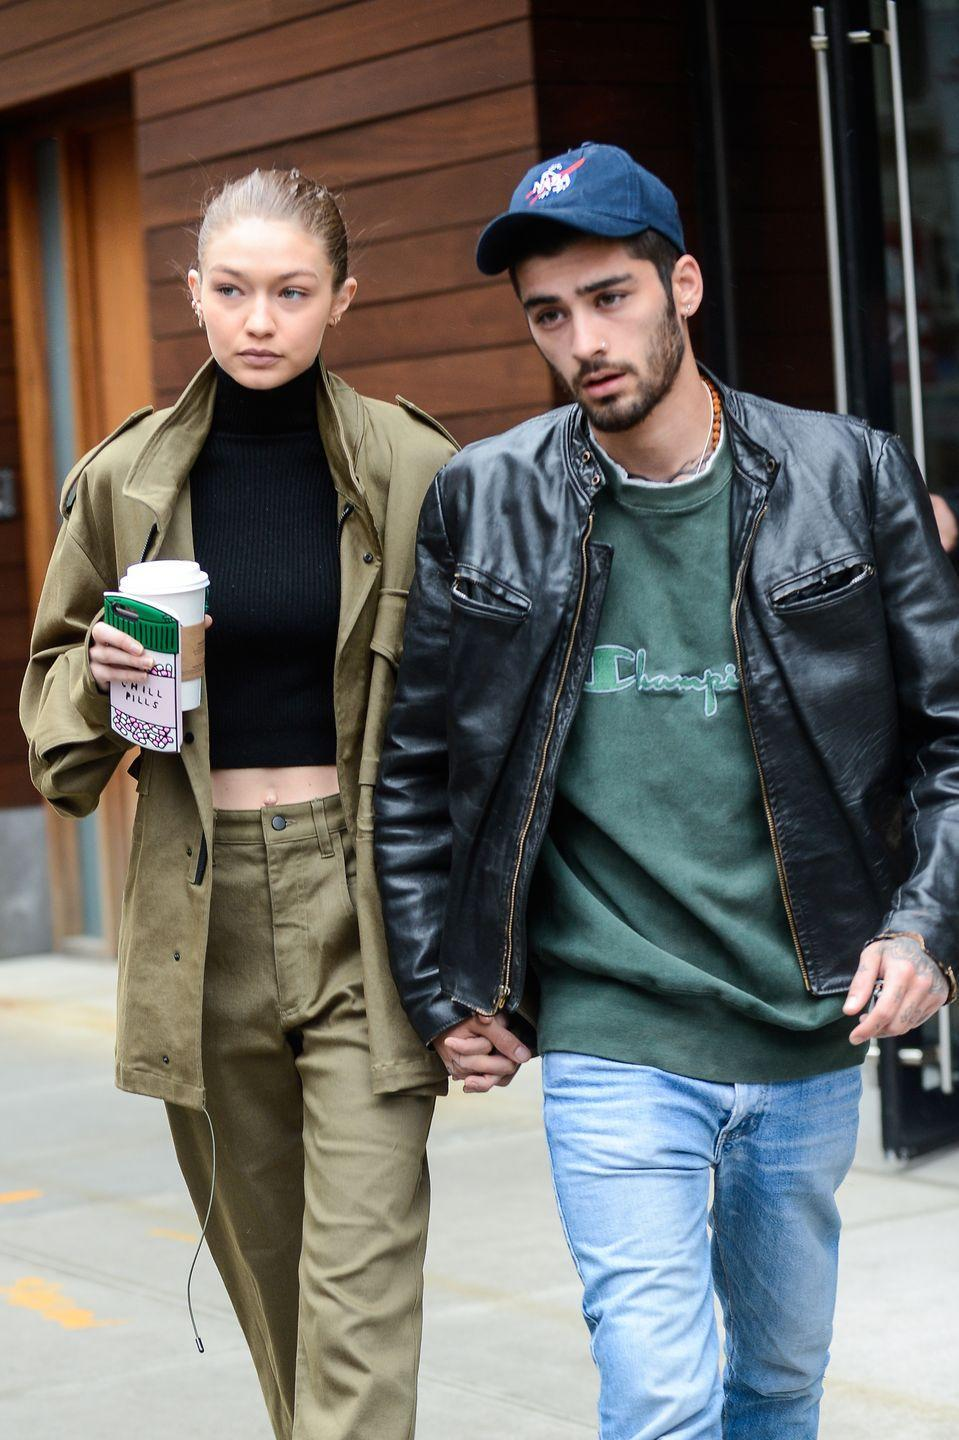 """<p>In 2018, Zayn confirmed <a href=""""https://onairwithryan.iheart.com/featured/ryan-seacrest/content/2018-04-12-zayn-confirms-second-studio-album-talks-gigi-hadid-split-listen/"""" rel=""""nofollow noopener"""" target=""""_blank"""" data-ylk=""""slk:in an interview with Ryan Seacrest"""" class=""""link rapid-noclick-resp"""">in an interview with Ryan Seacrest</a> that """"Let Me"""" is about <a href=""""https://www.goodhousekeeping.com/life/entertainment/a32307448/gigi-hadid-pregnant-zayn-malik-baby/"""" rel=""""nofollow noopener"""" target=""""_blank"""" data-ylk=""""slk:Gigi Hadid"""" class=""""link rapid-noclick-resp"""">Gigi Hadid</a>. Though they were broken up at the time, they're now back together and <a href=""""https://www.elle.com/culture/celebrities/a32307042/gigi-hadid-pregnant-zayn-malik-baby/"""" rel=""""nofollow noopener"""" target=""""_blank"""" data-ylk=""""slk:expecting a baby together later this year"""" class=""""link rapid-noclick-resp"""">expecting a baby together later this year</a>. </p>"""